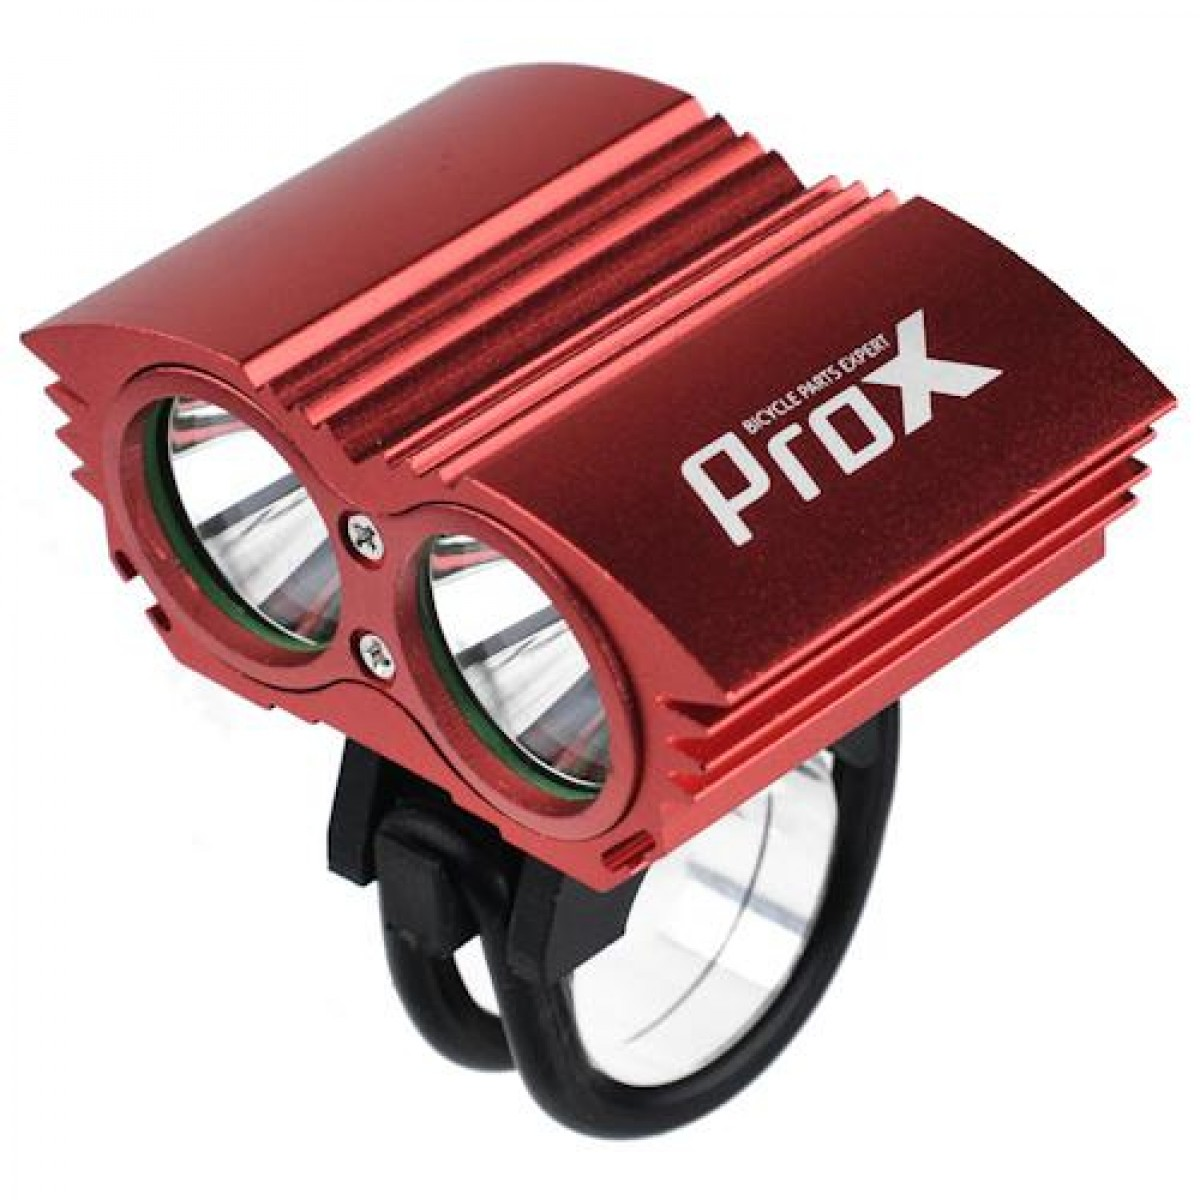 Передняя фара ProX Dual Power 2x Cree красный (a-O-b-p-0145)